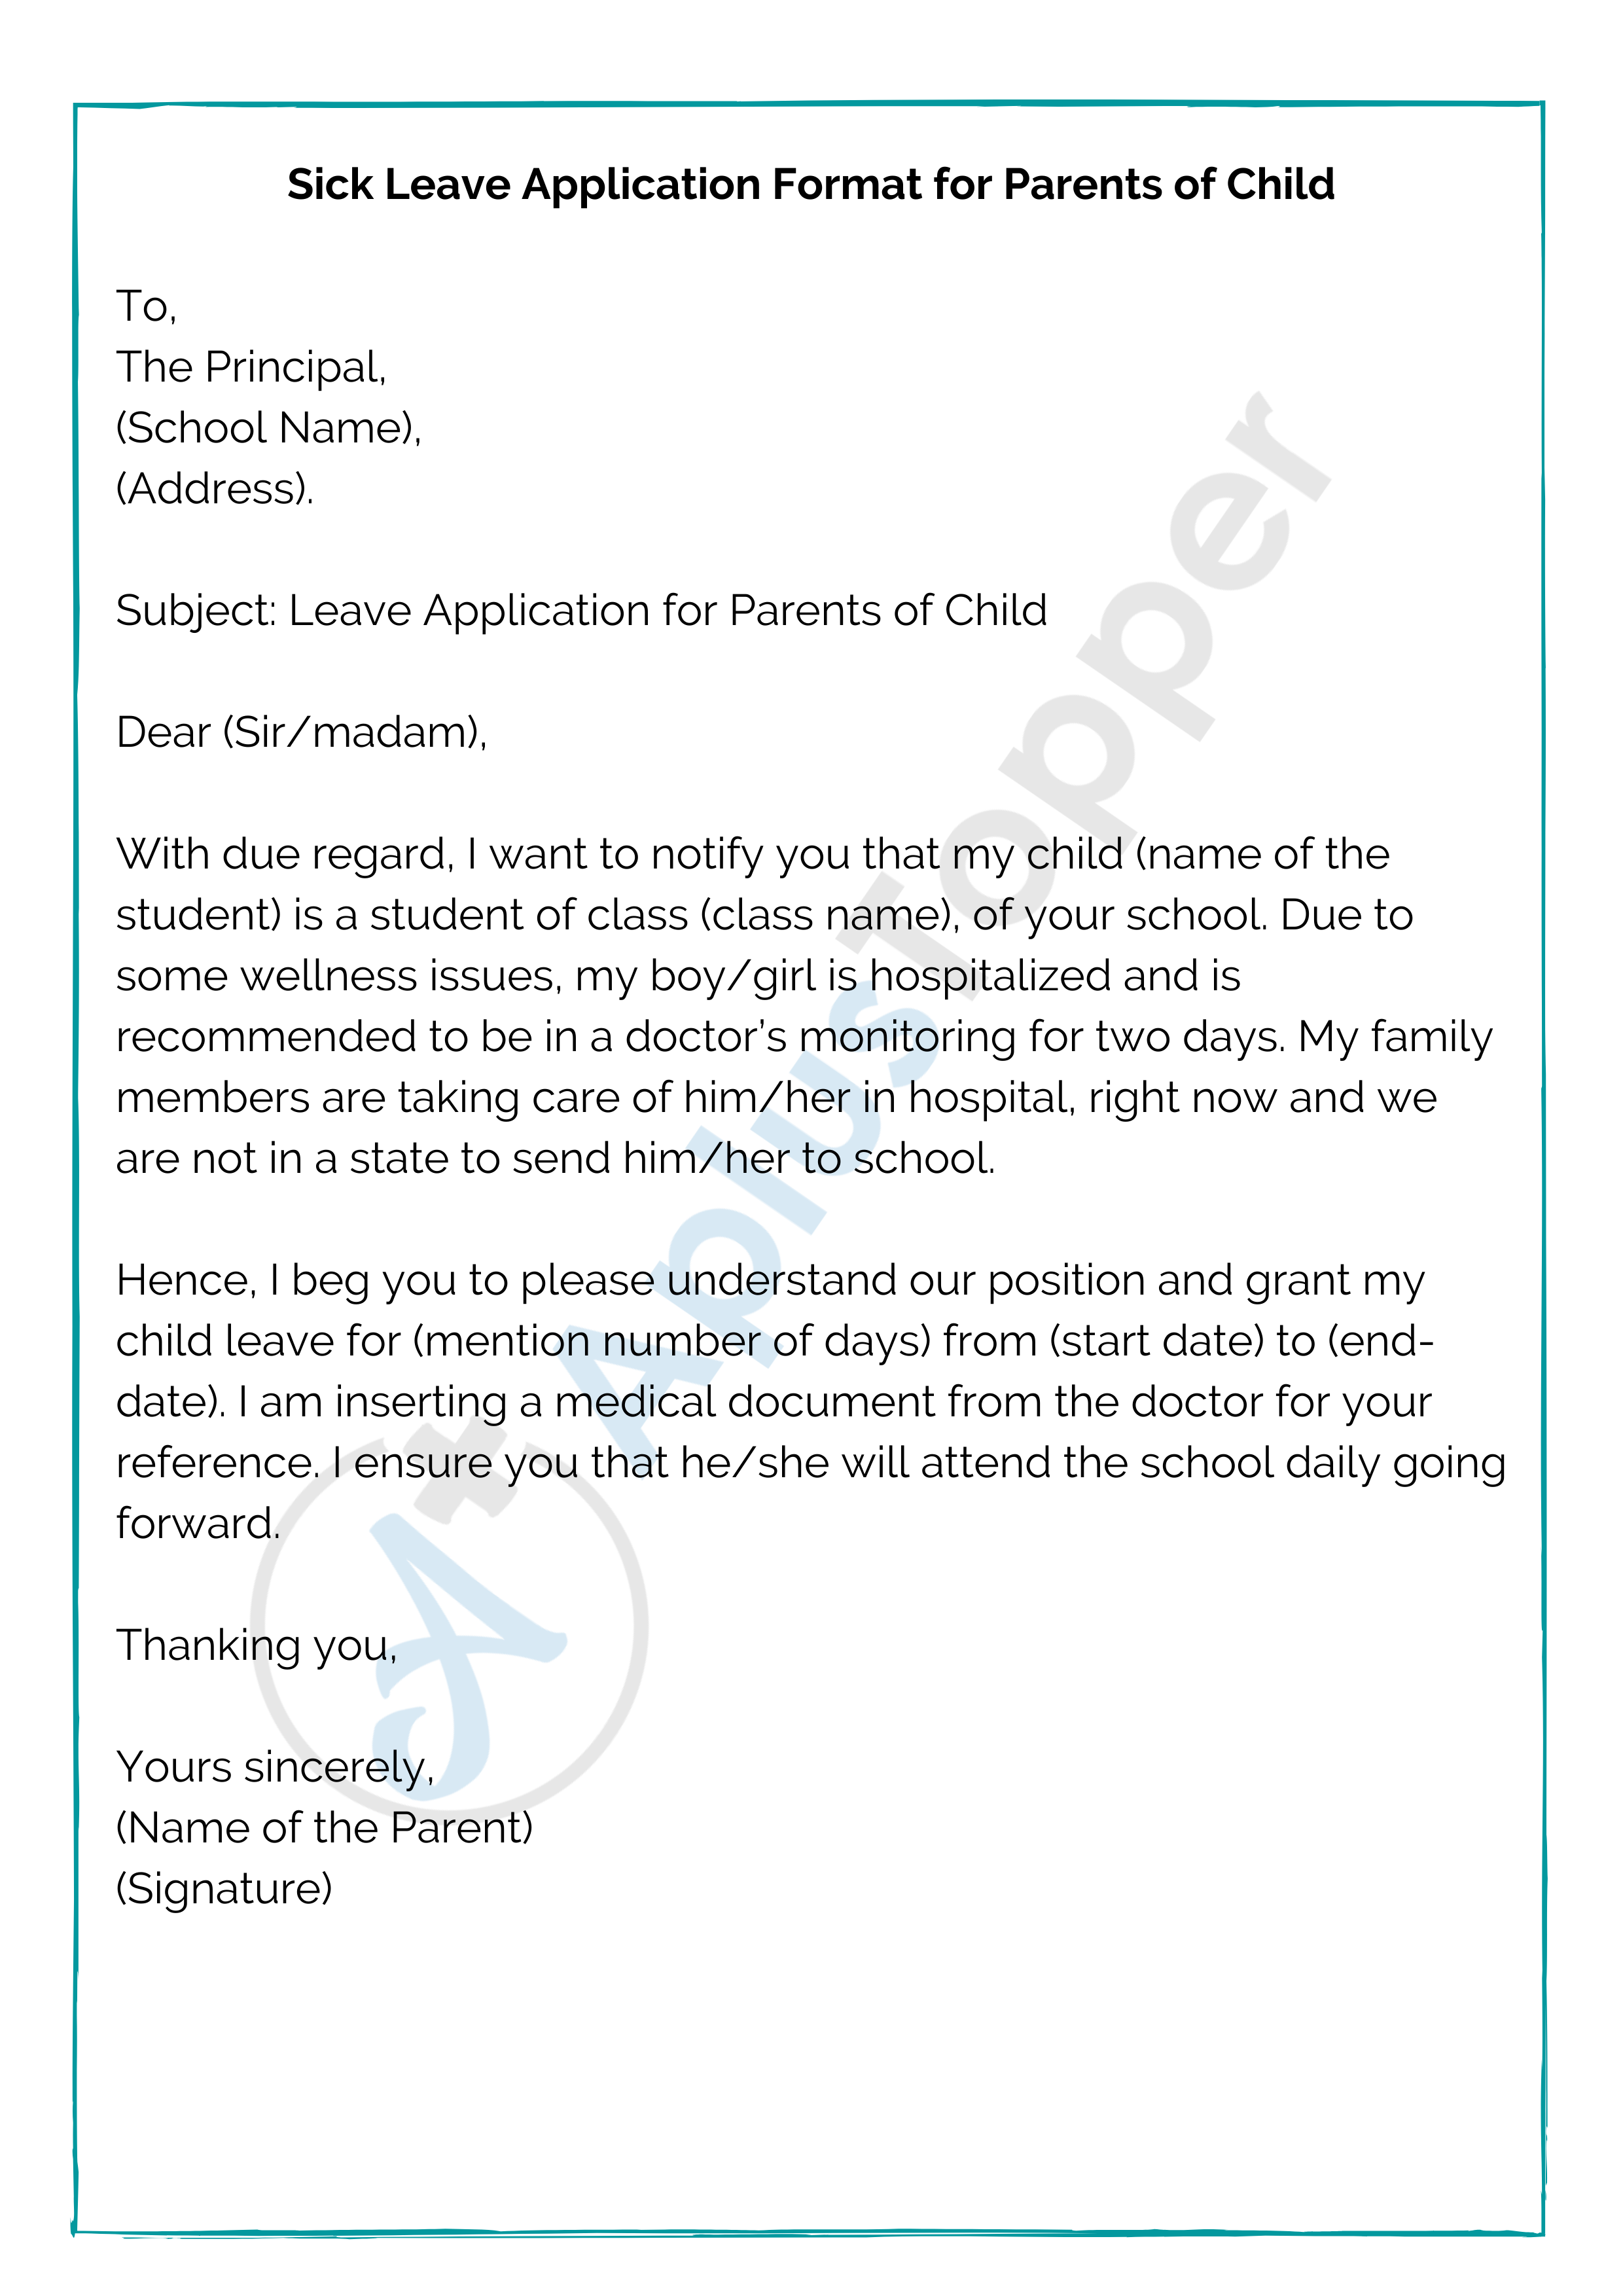 Sick Leave Application Format for Parents of Child